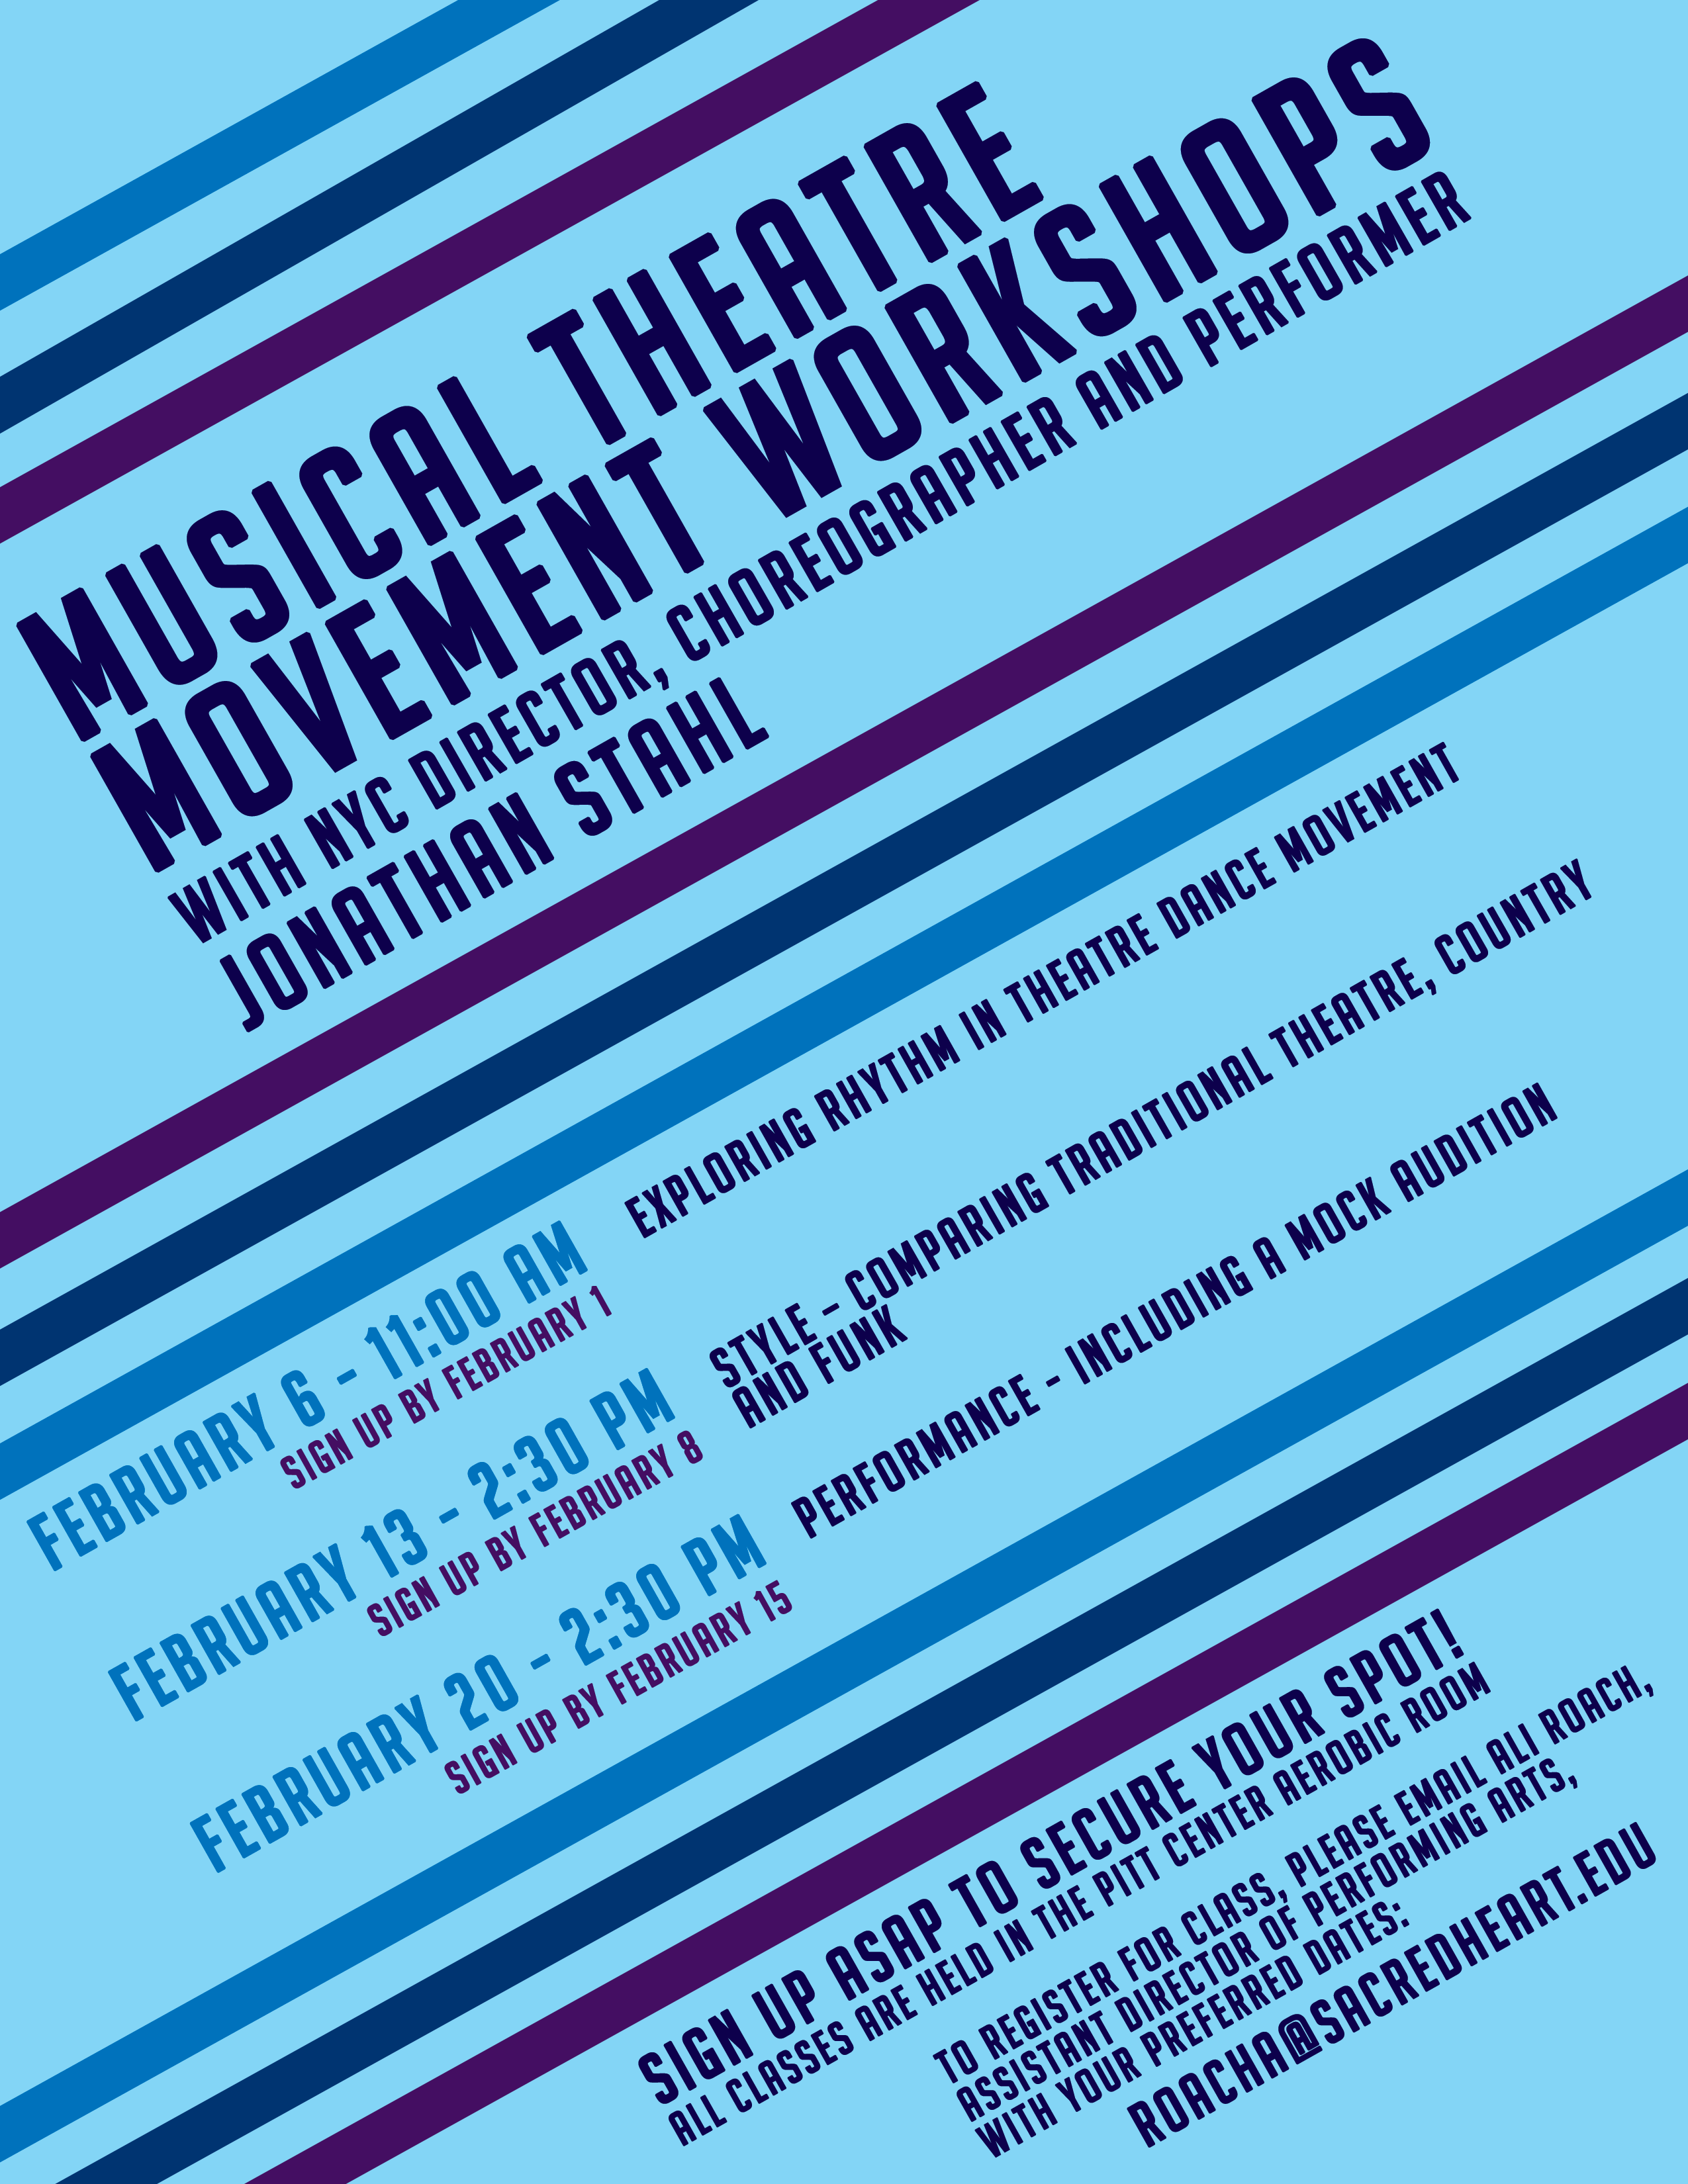 Musical-Theatre-Movement-Workshops[1]